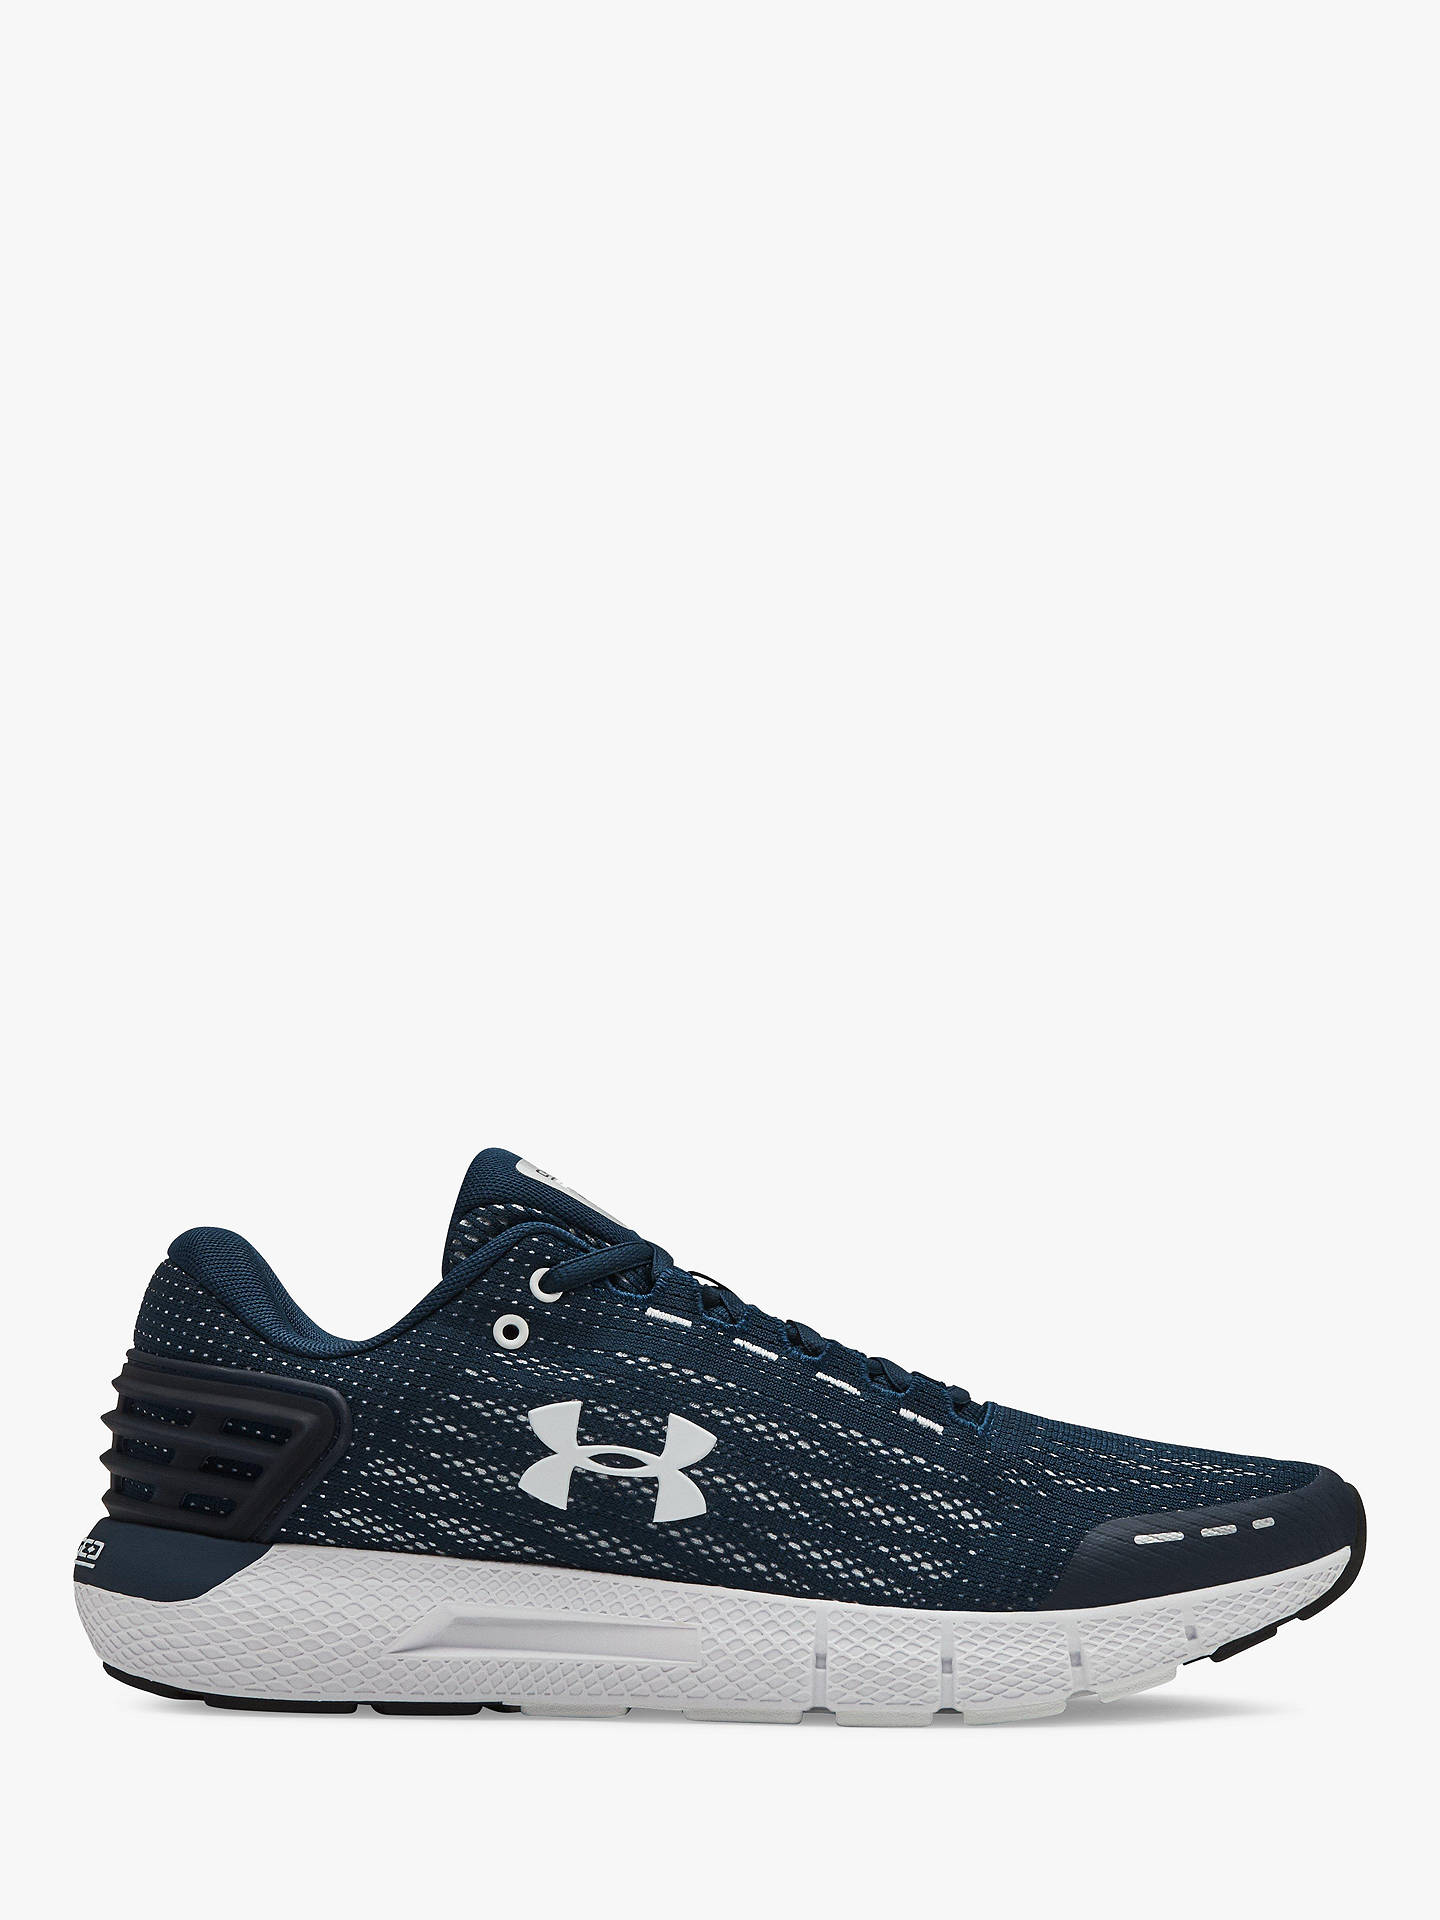 2c7a8f90dafc Buy Under Armour Charged Rogue Men s Running Shoes